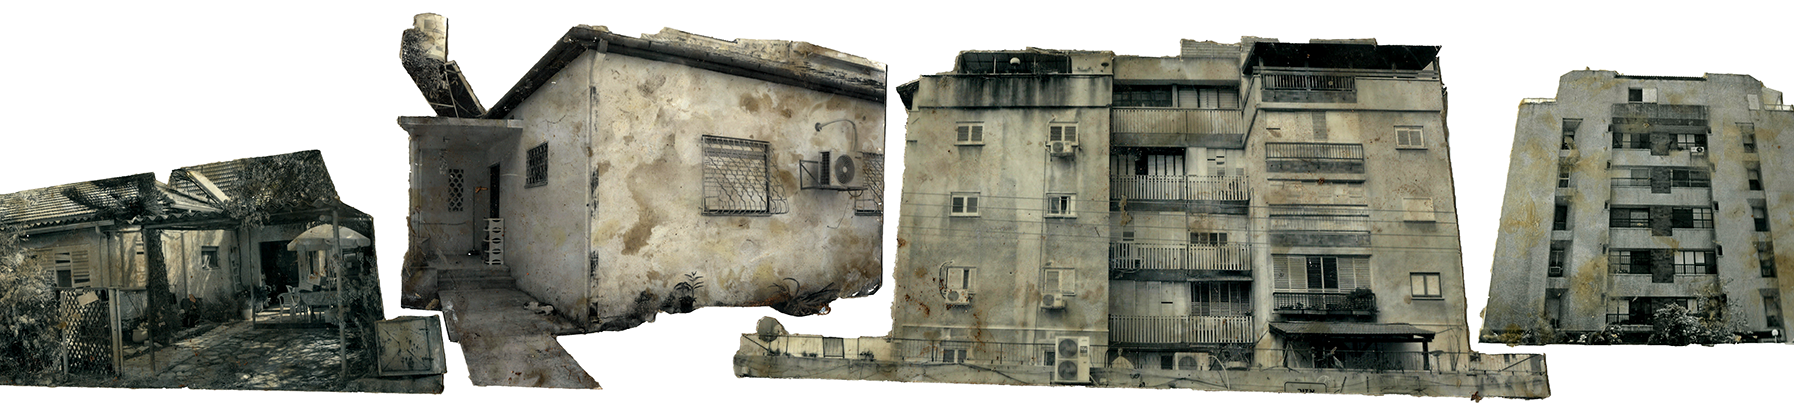 Homes for - My under water homes installation  Injected ink prints coated with wax